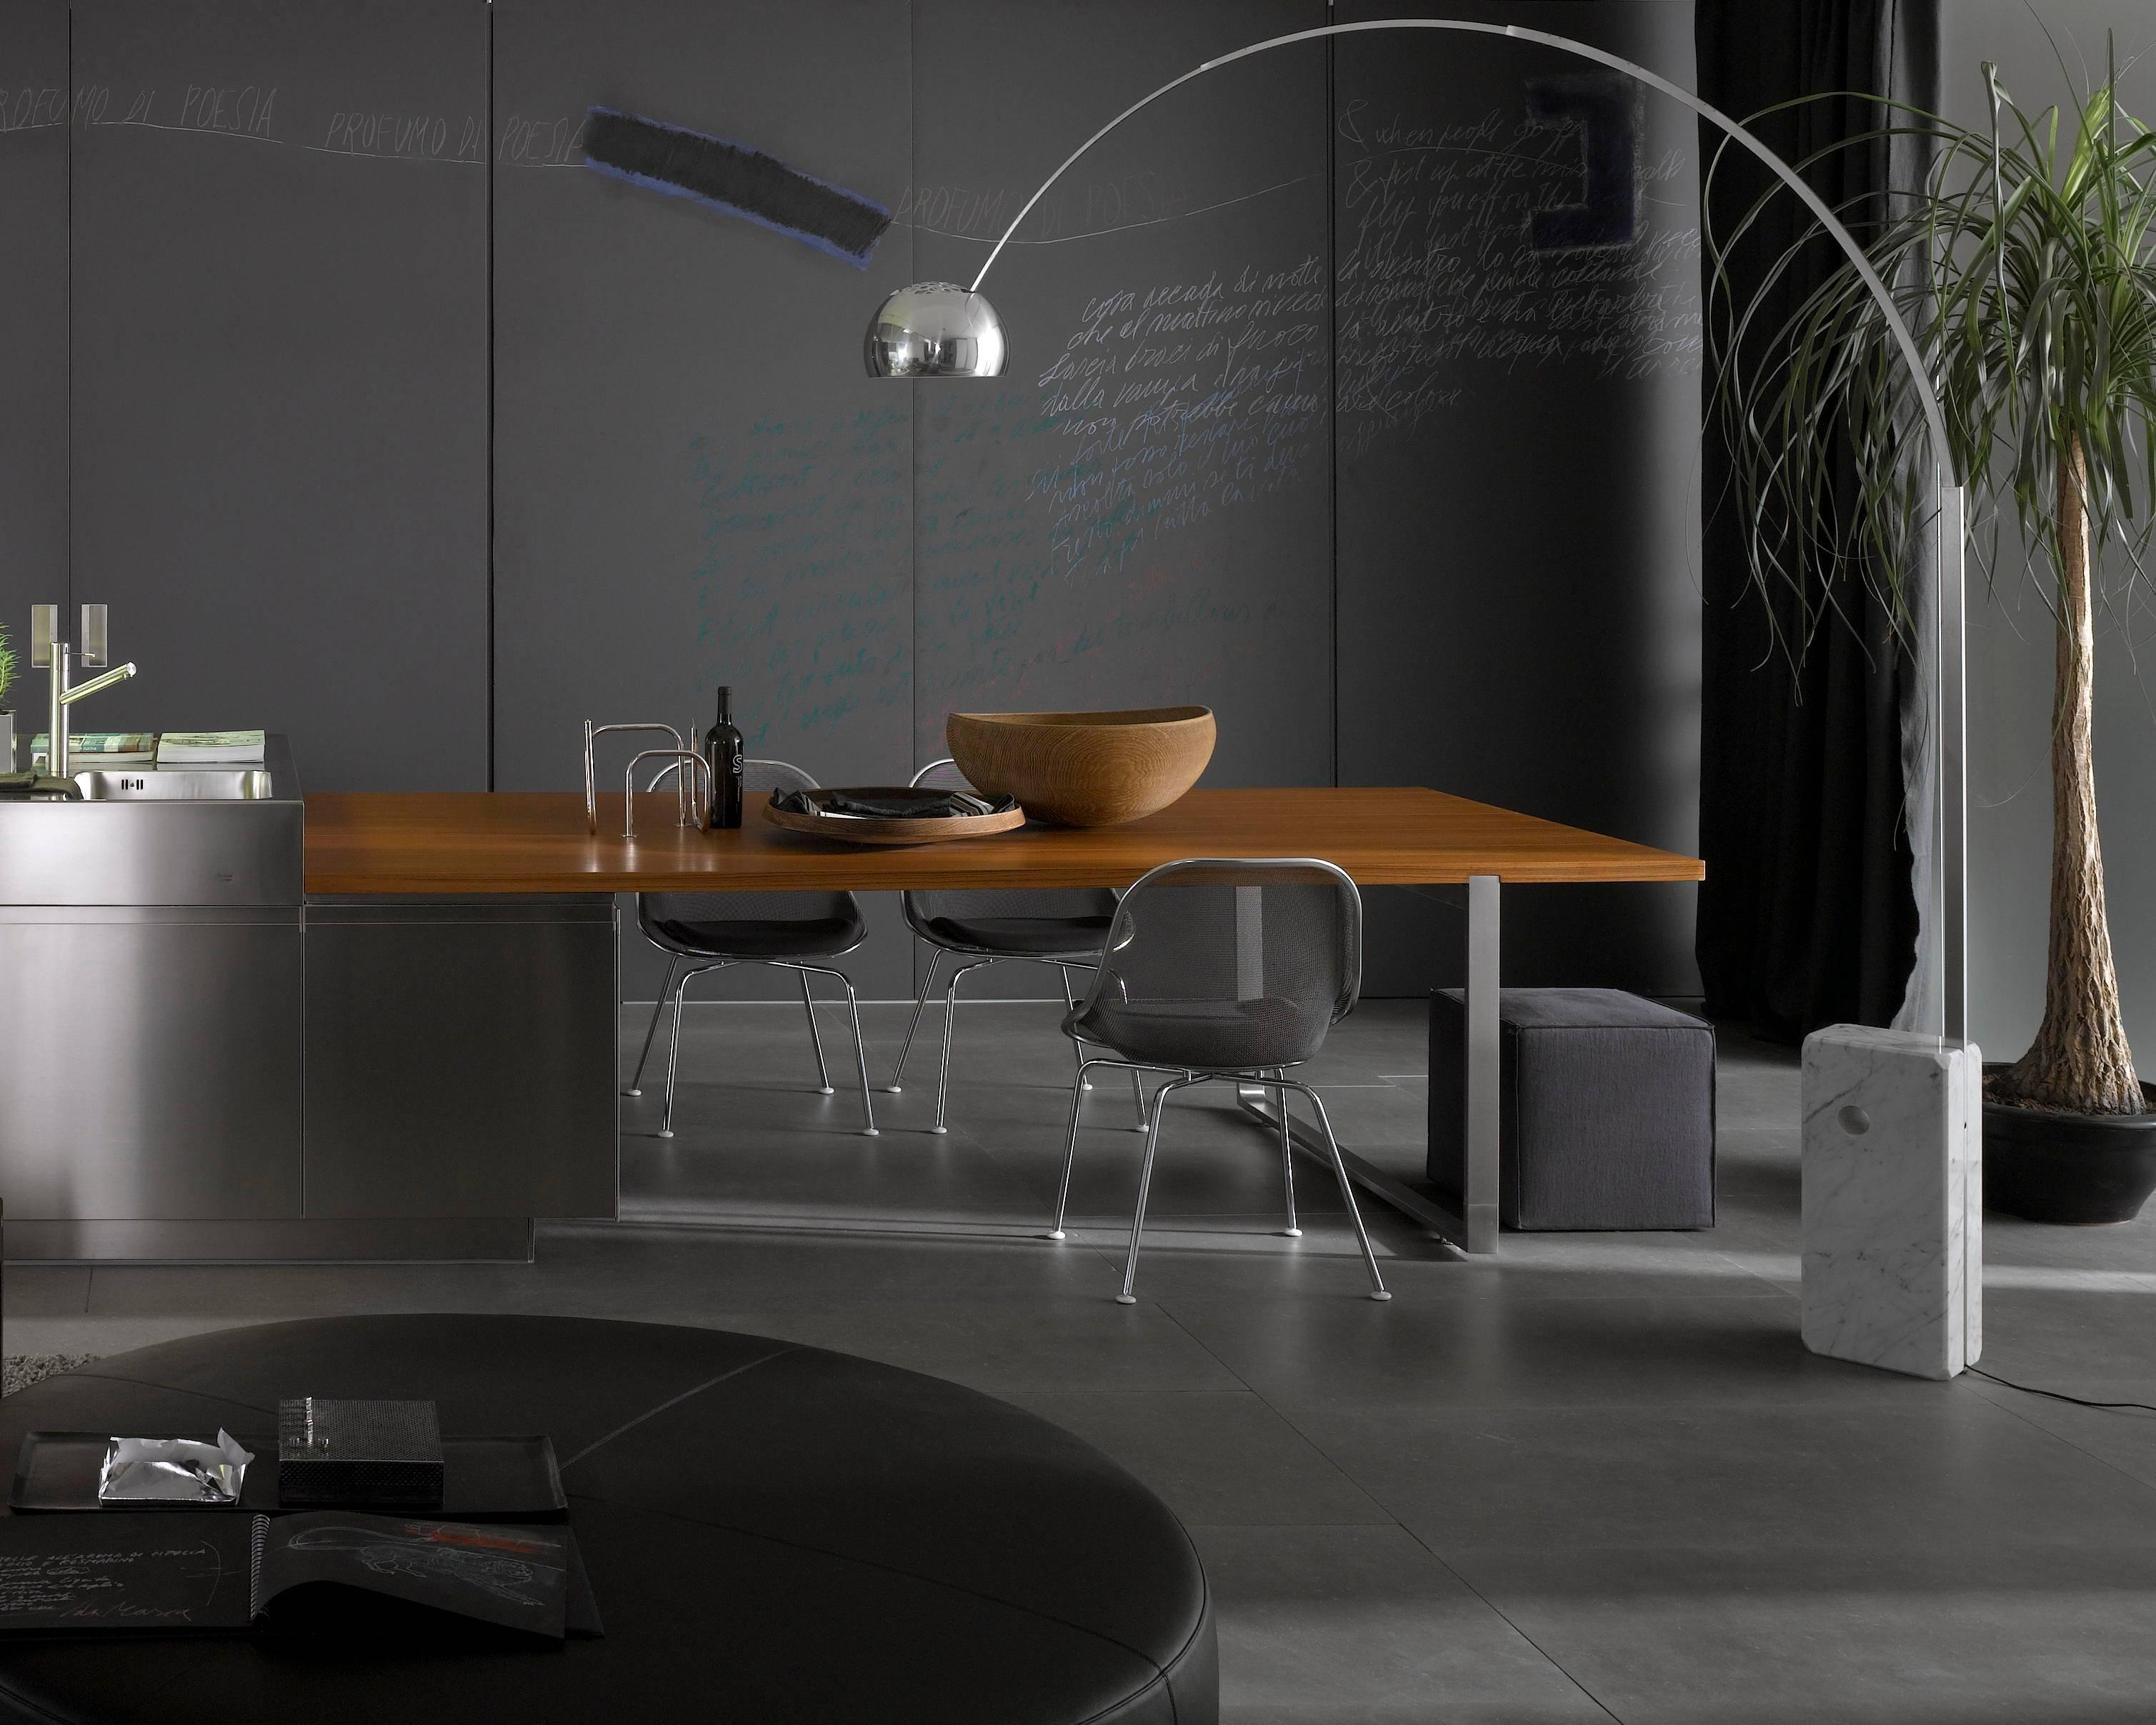 Bogenleuchte Designklassiker Flos Arco Led Floor Lamp By Achille And Pier Giacomo